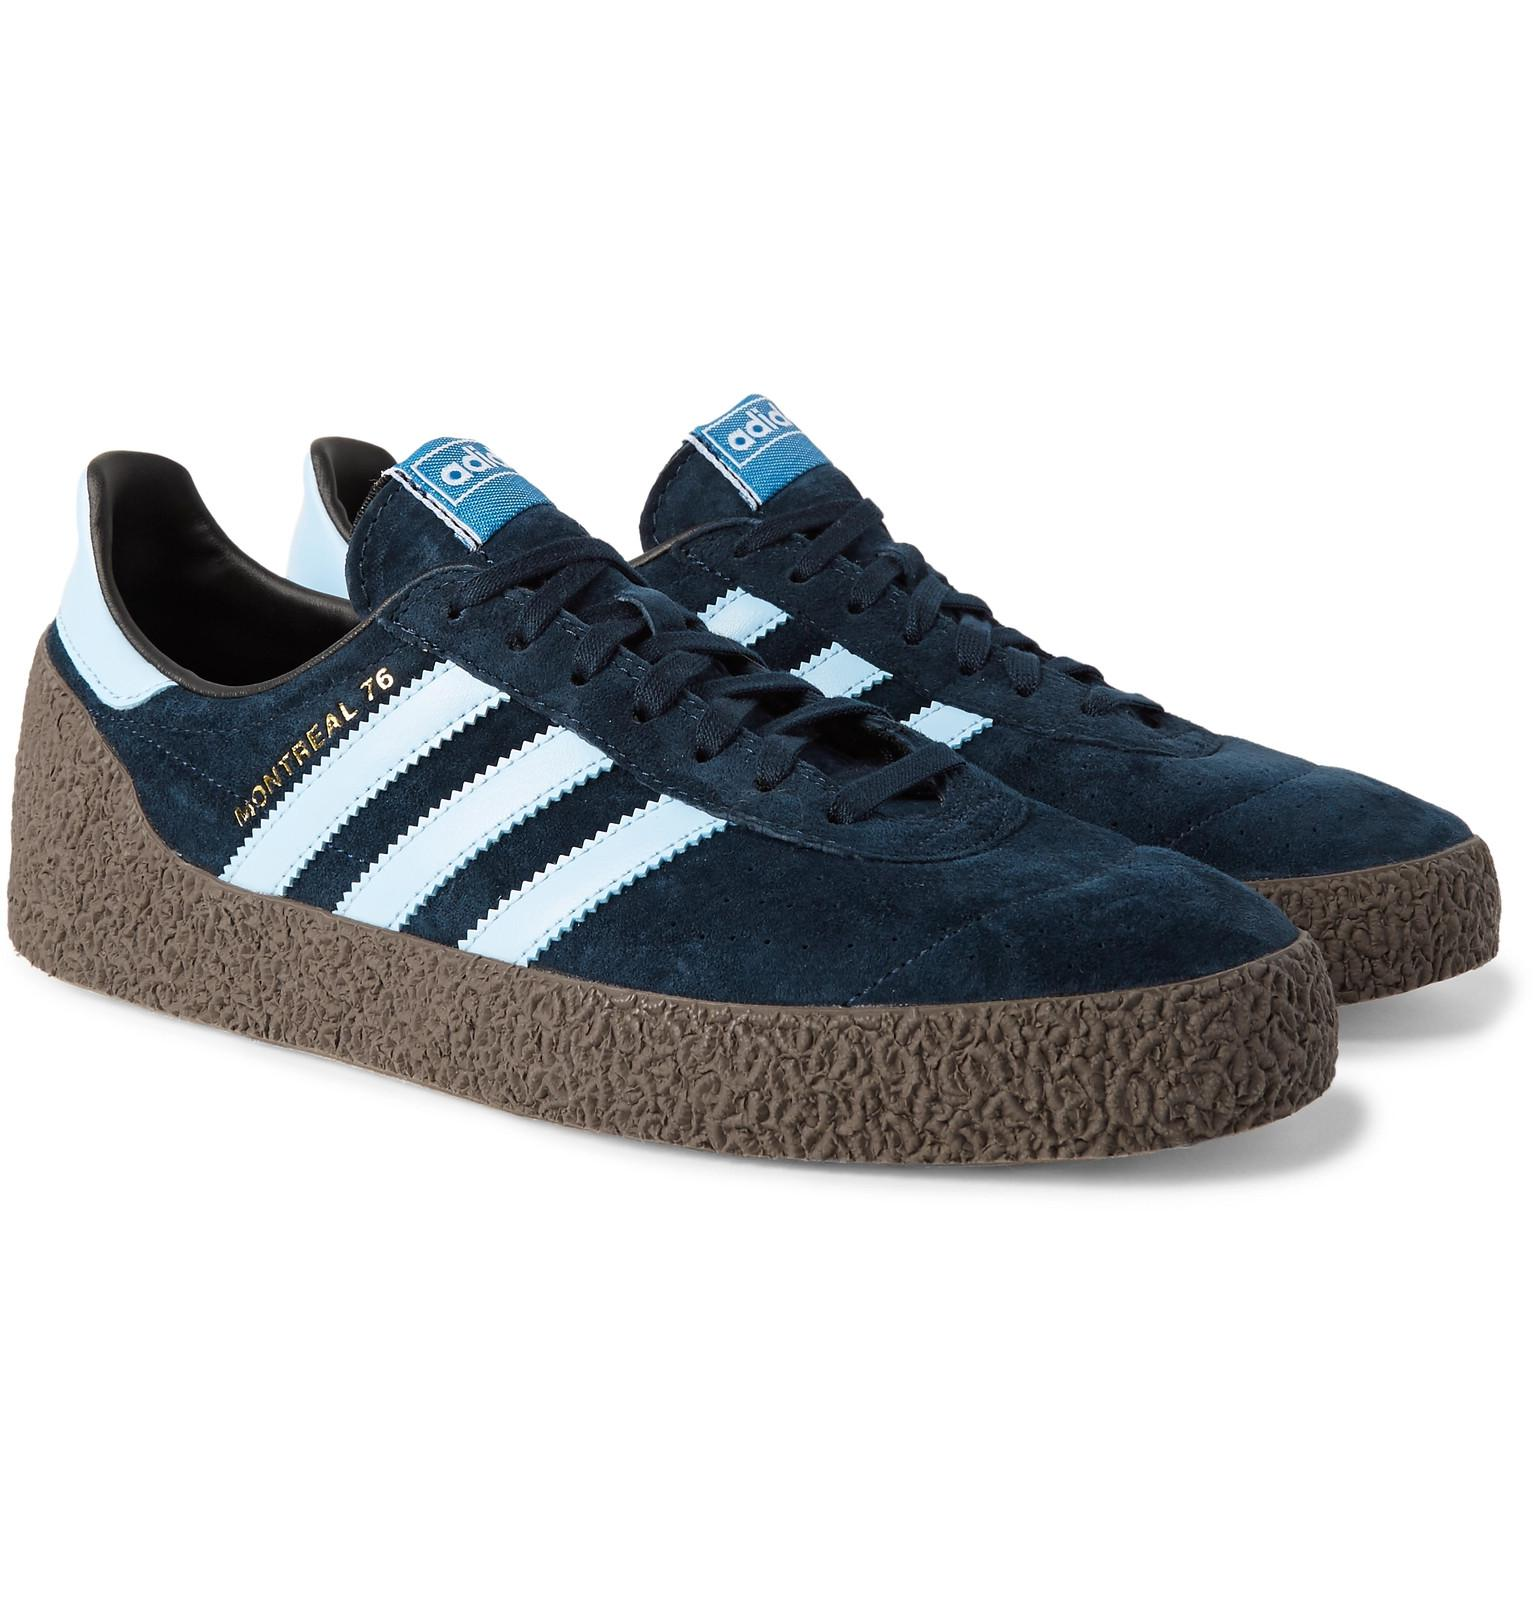 adidas 1IS1EEgbXSal 76 leather sneakers AzF6FRlR